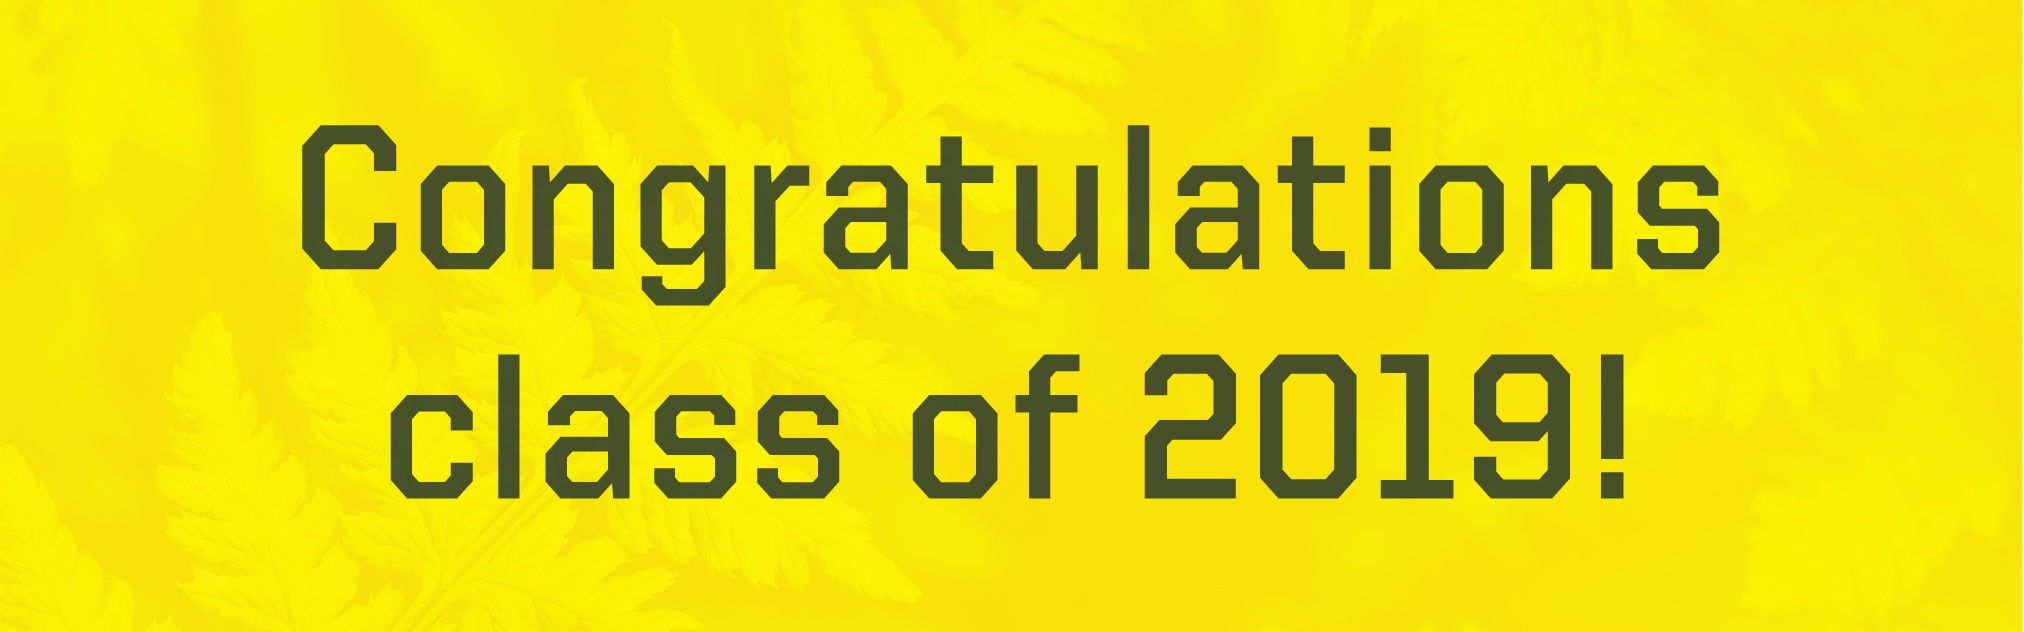 Congratulations Graduates Class of 2019 on a yellow geometric background